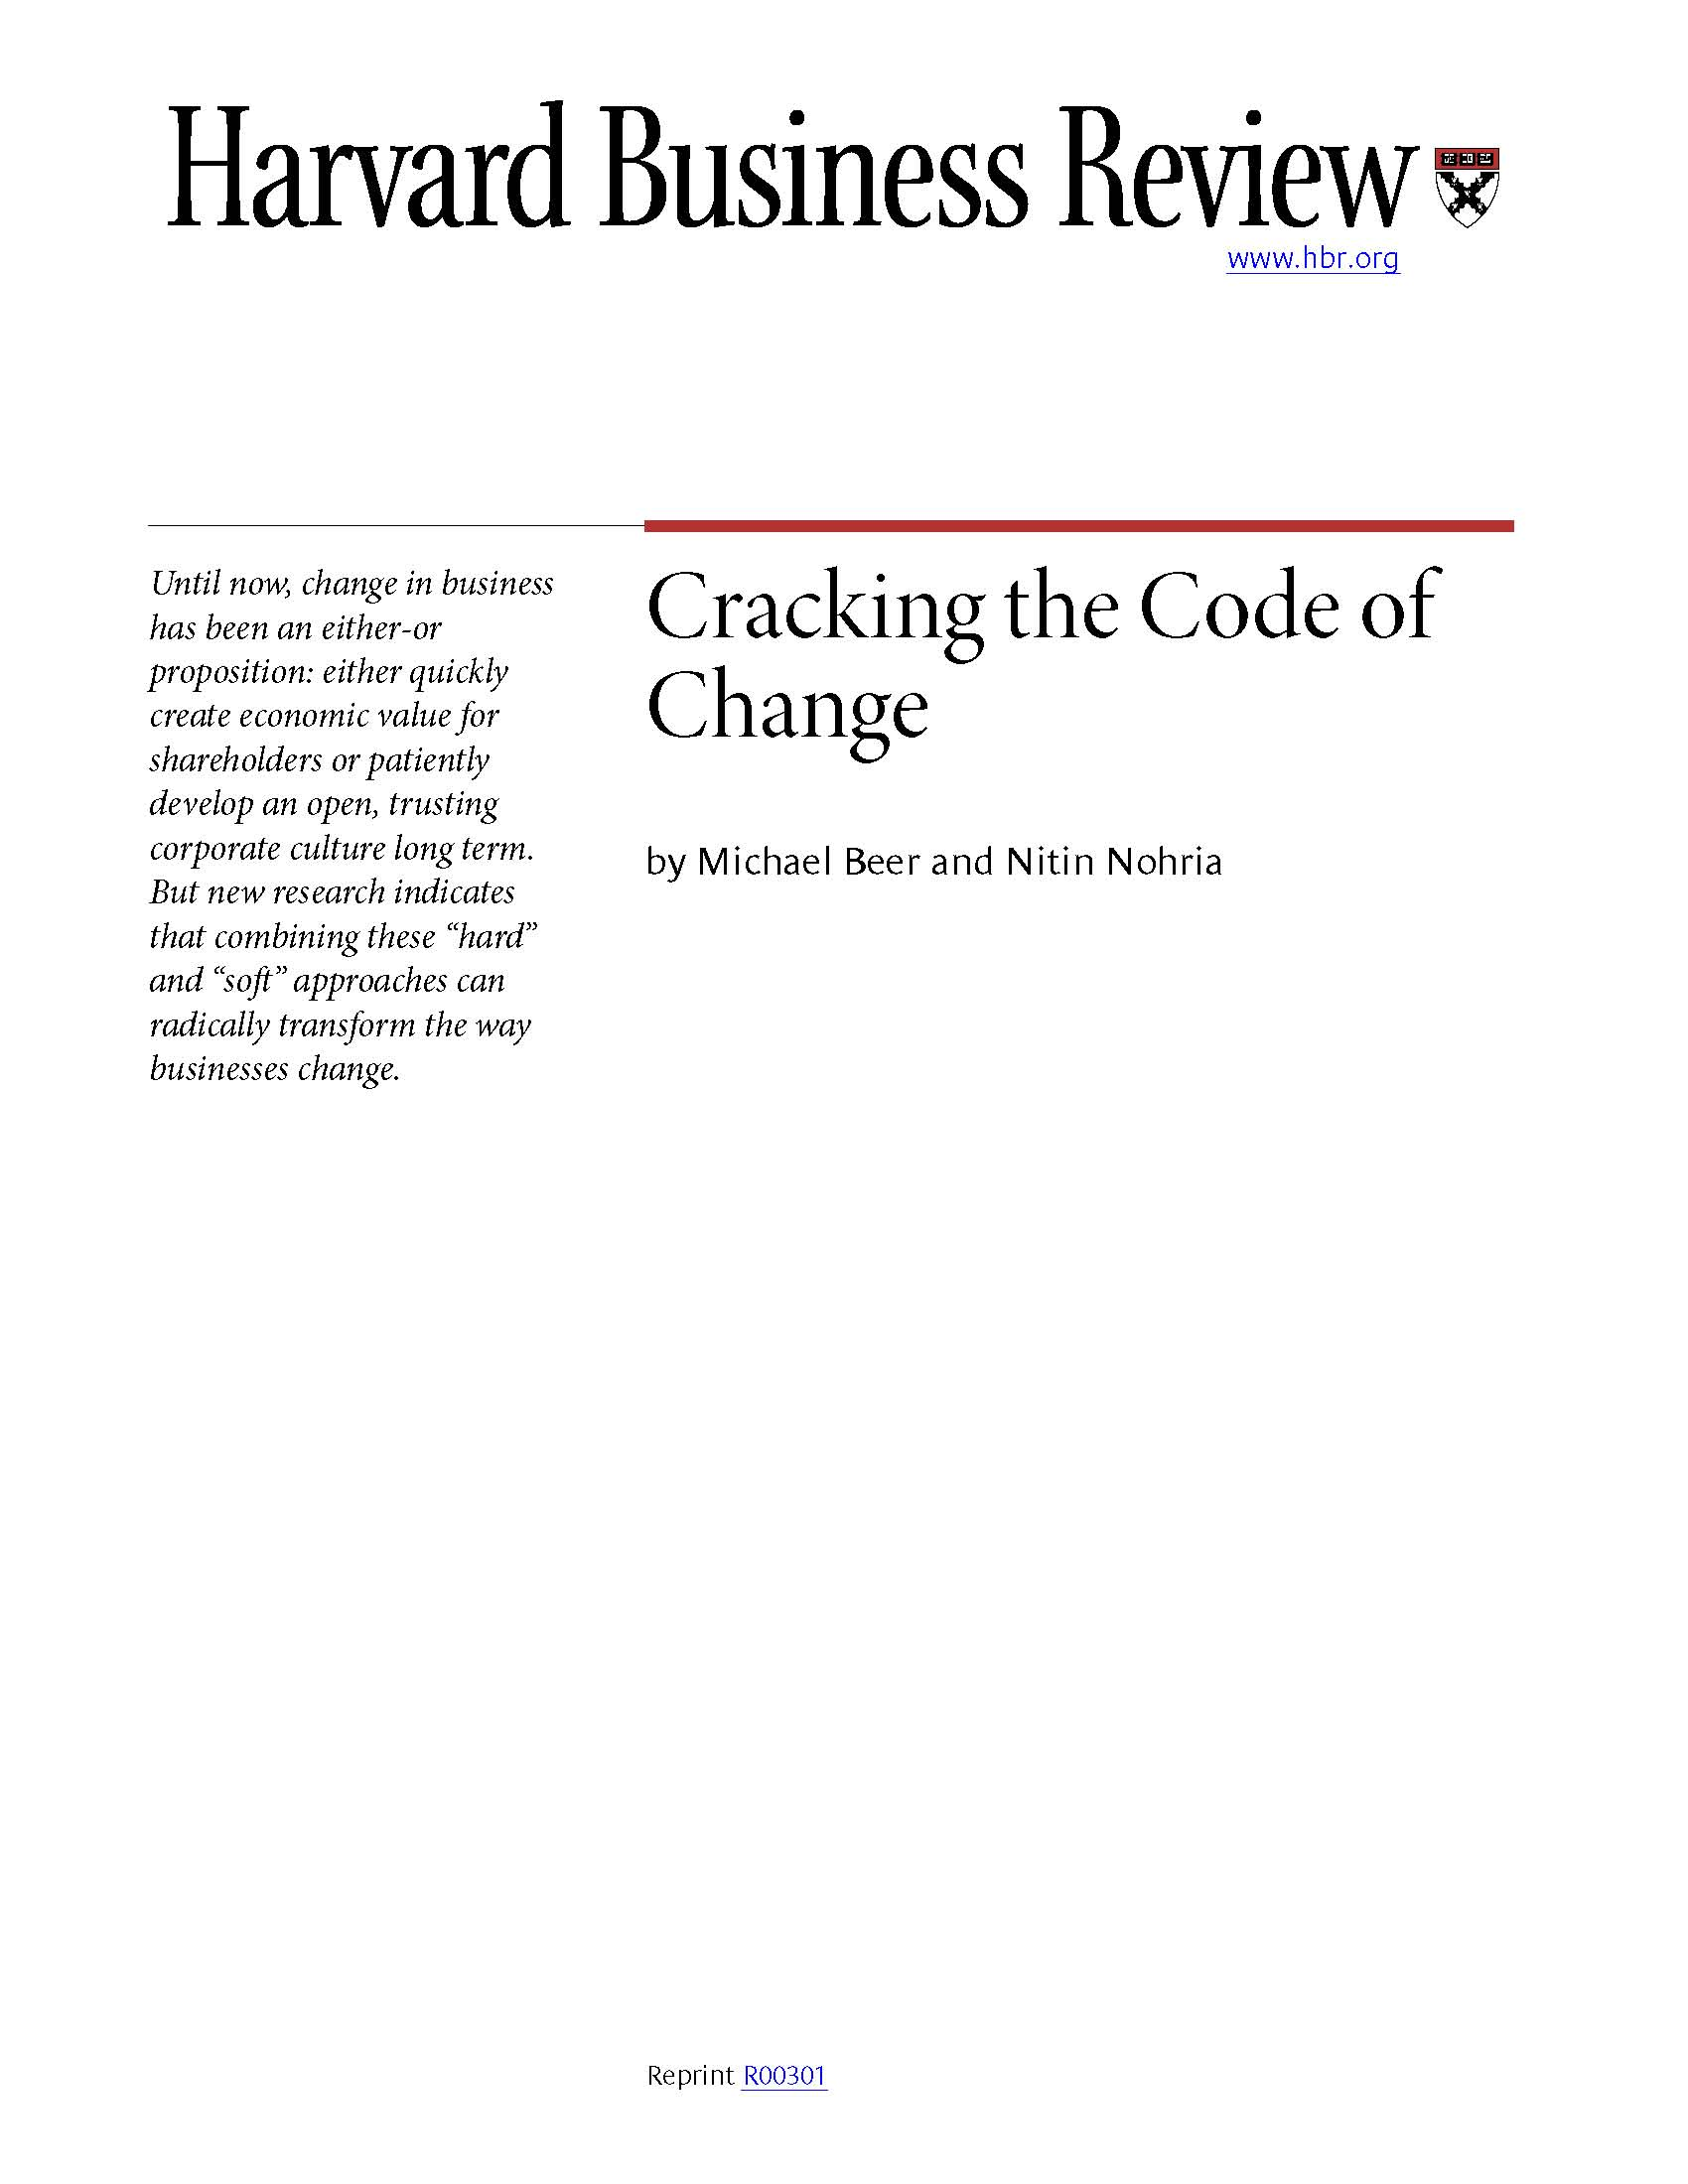 Cracking the Code of Change